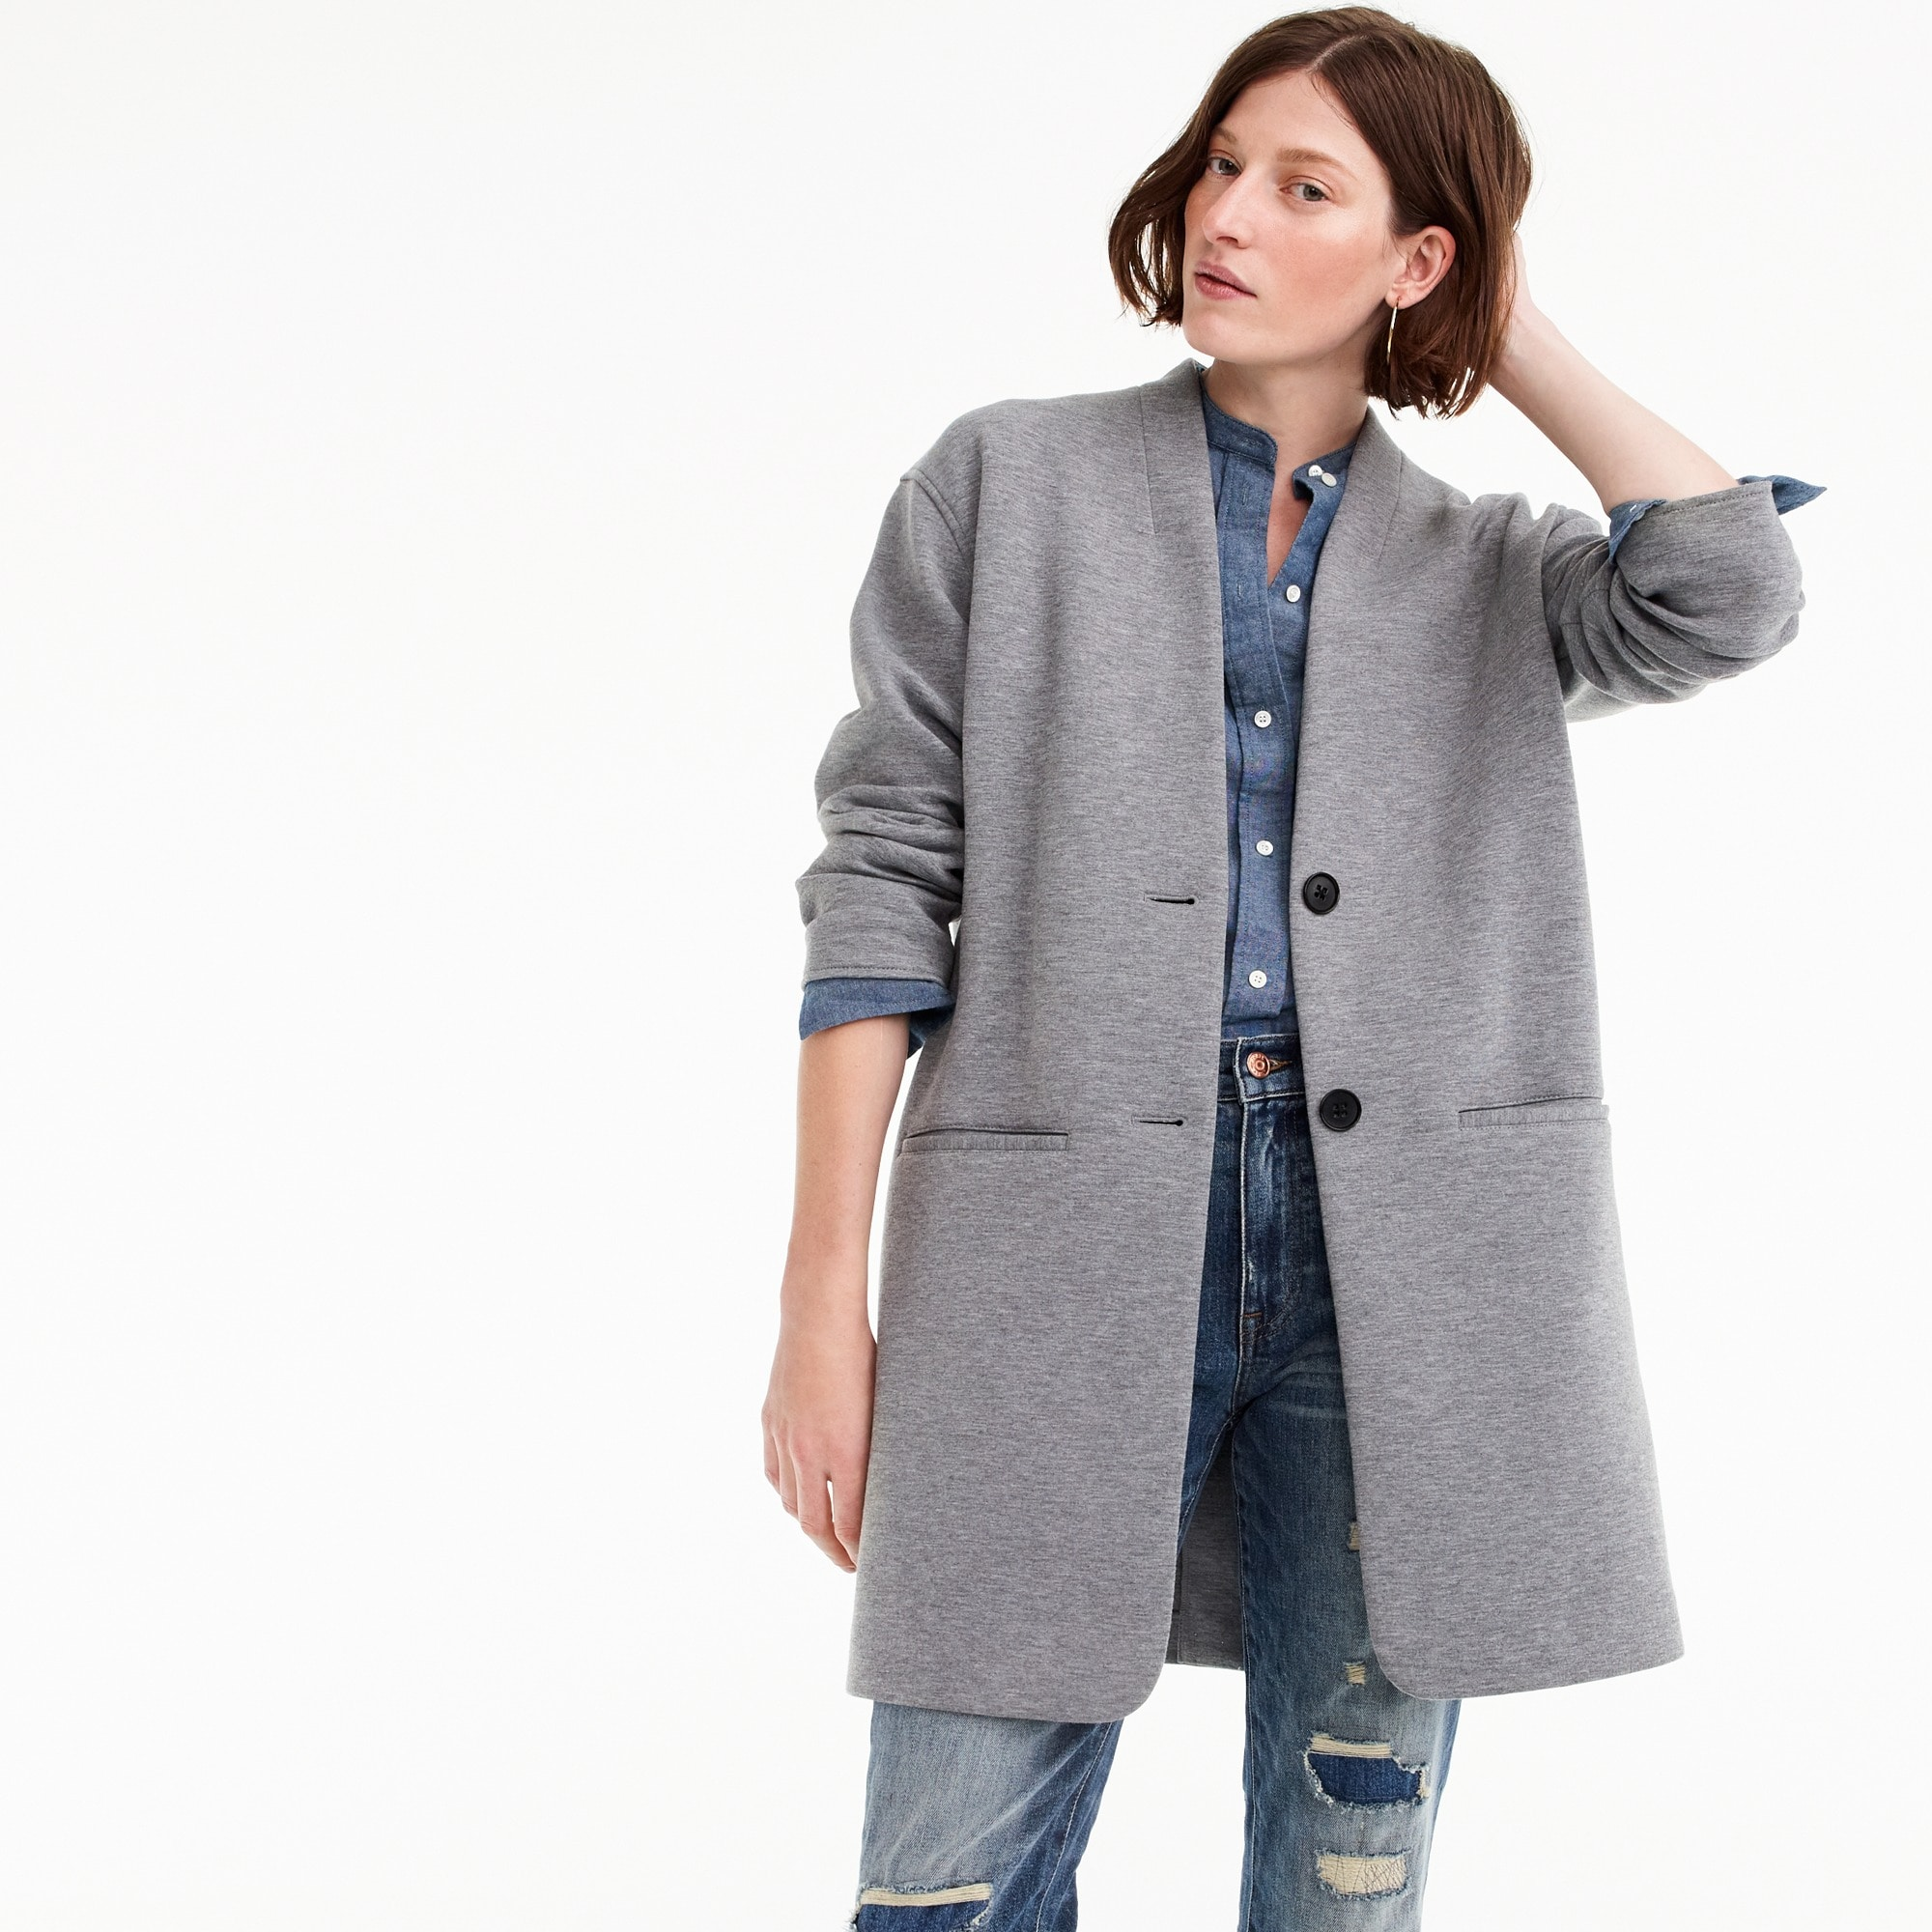 Image 1 for Drapey heather grey jacket